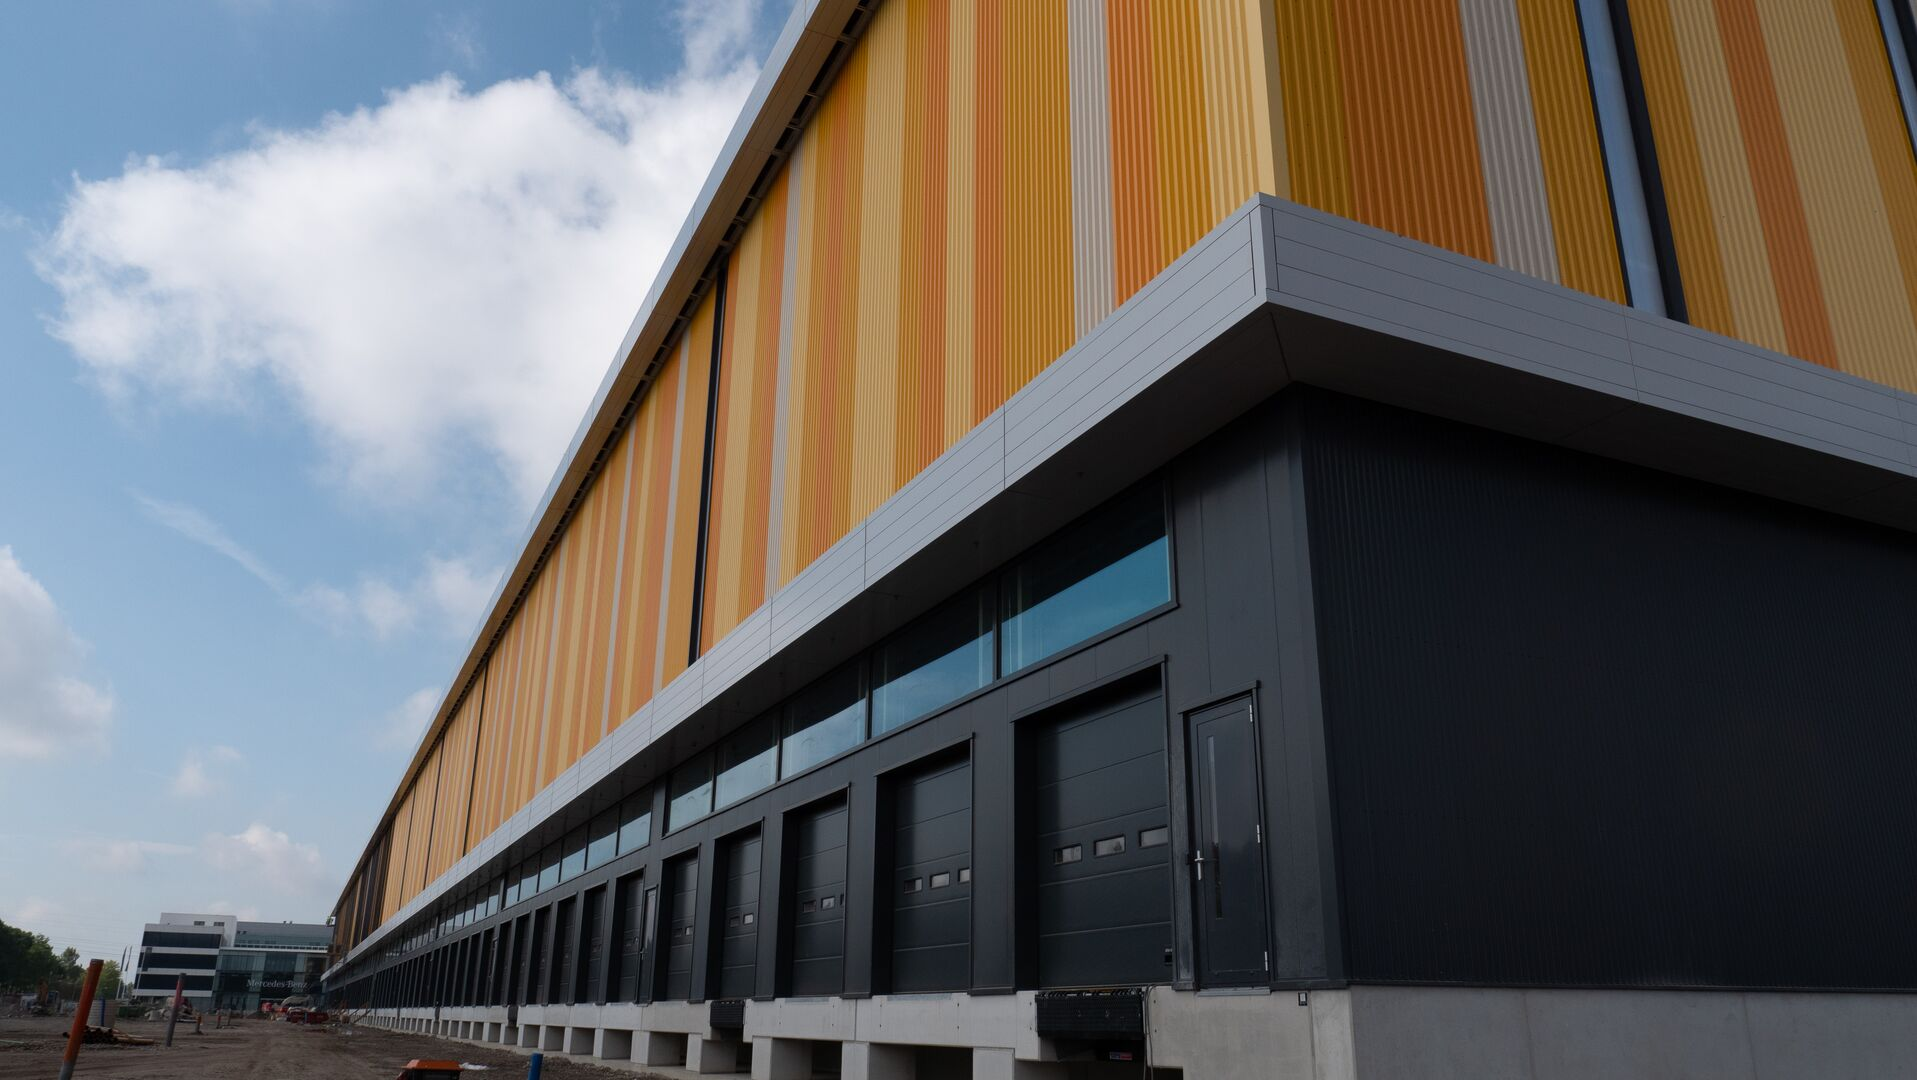 Jumbo Nieuwegein warehouse in NL using Colorcoat HPS200 Ultra